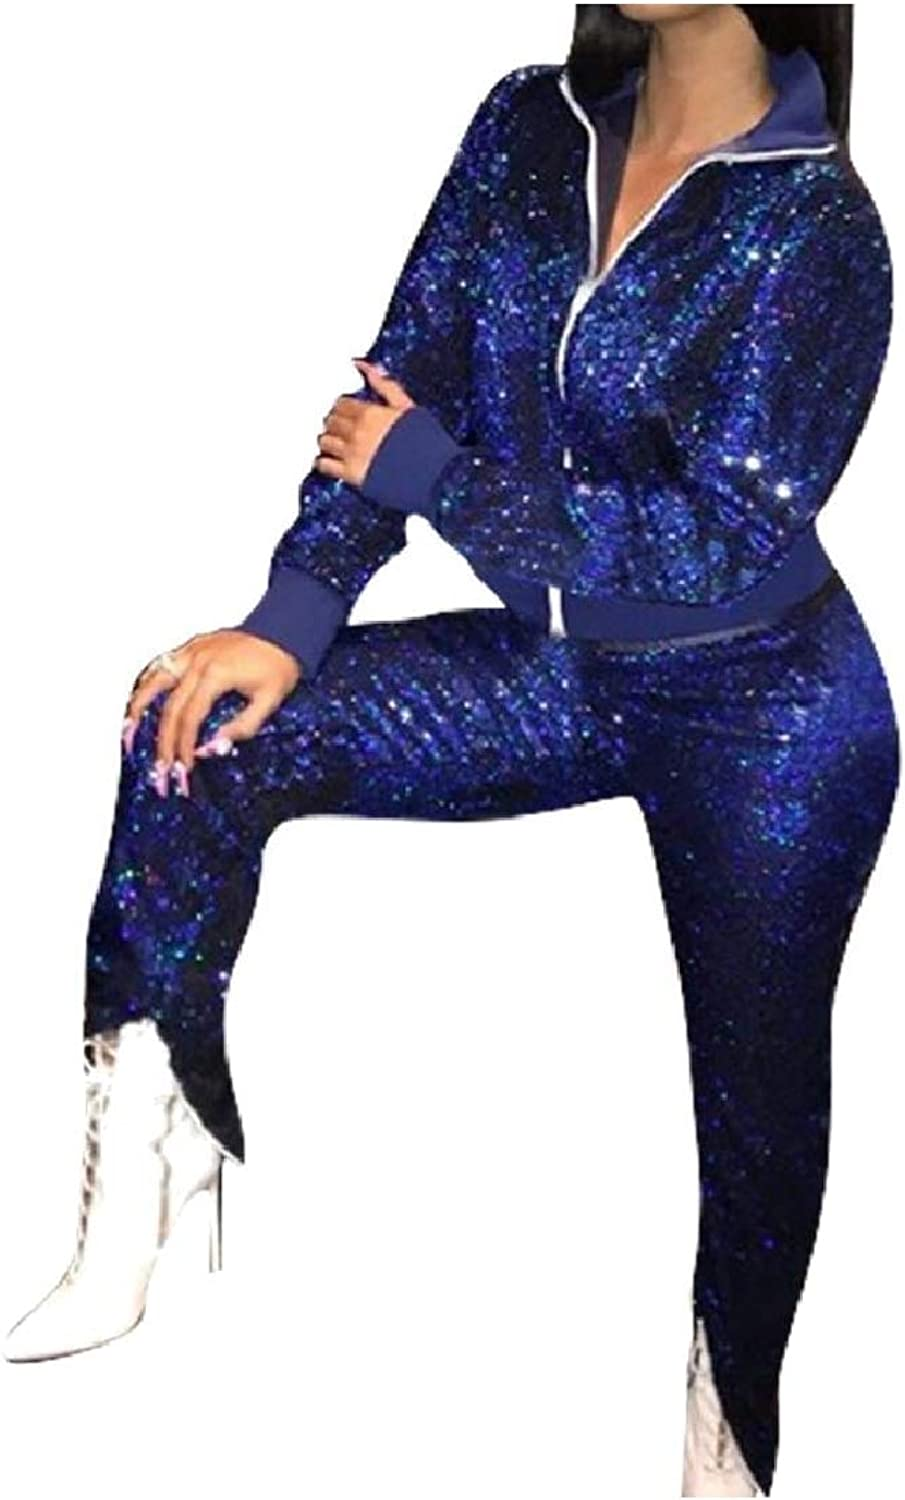 Energy Womens with Zips Sexy Long-Sleeve Sequin Top Jacket Pants 2 Piece Suit Set Outfits